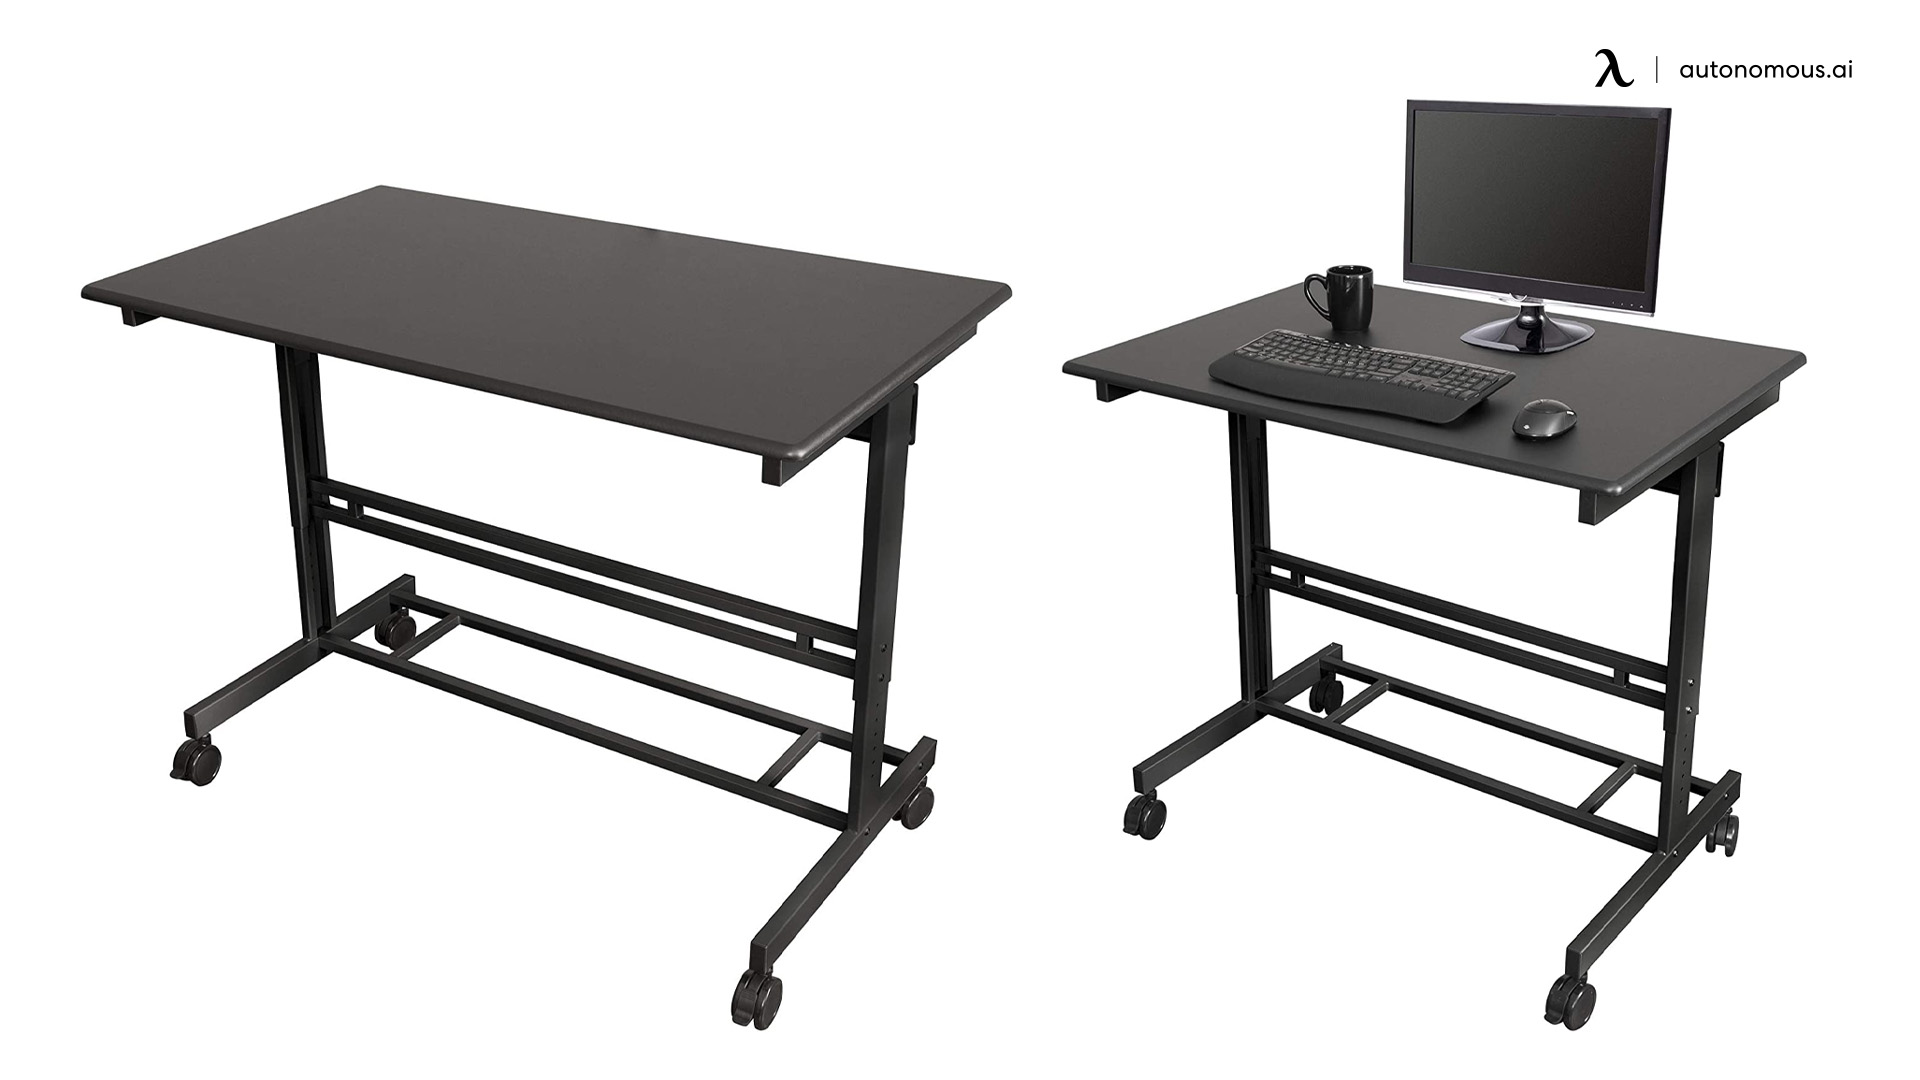 S Stand Up Desk Mobile Fixed-height Two-tier Desk